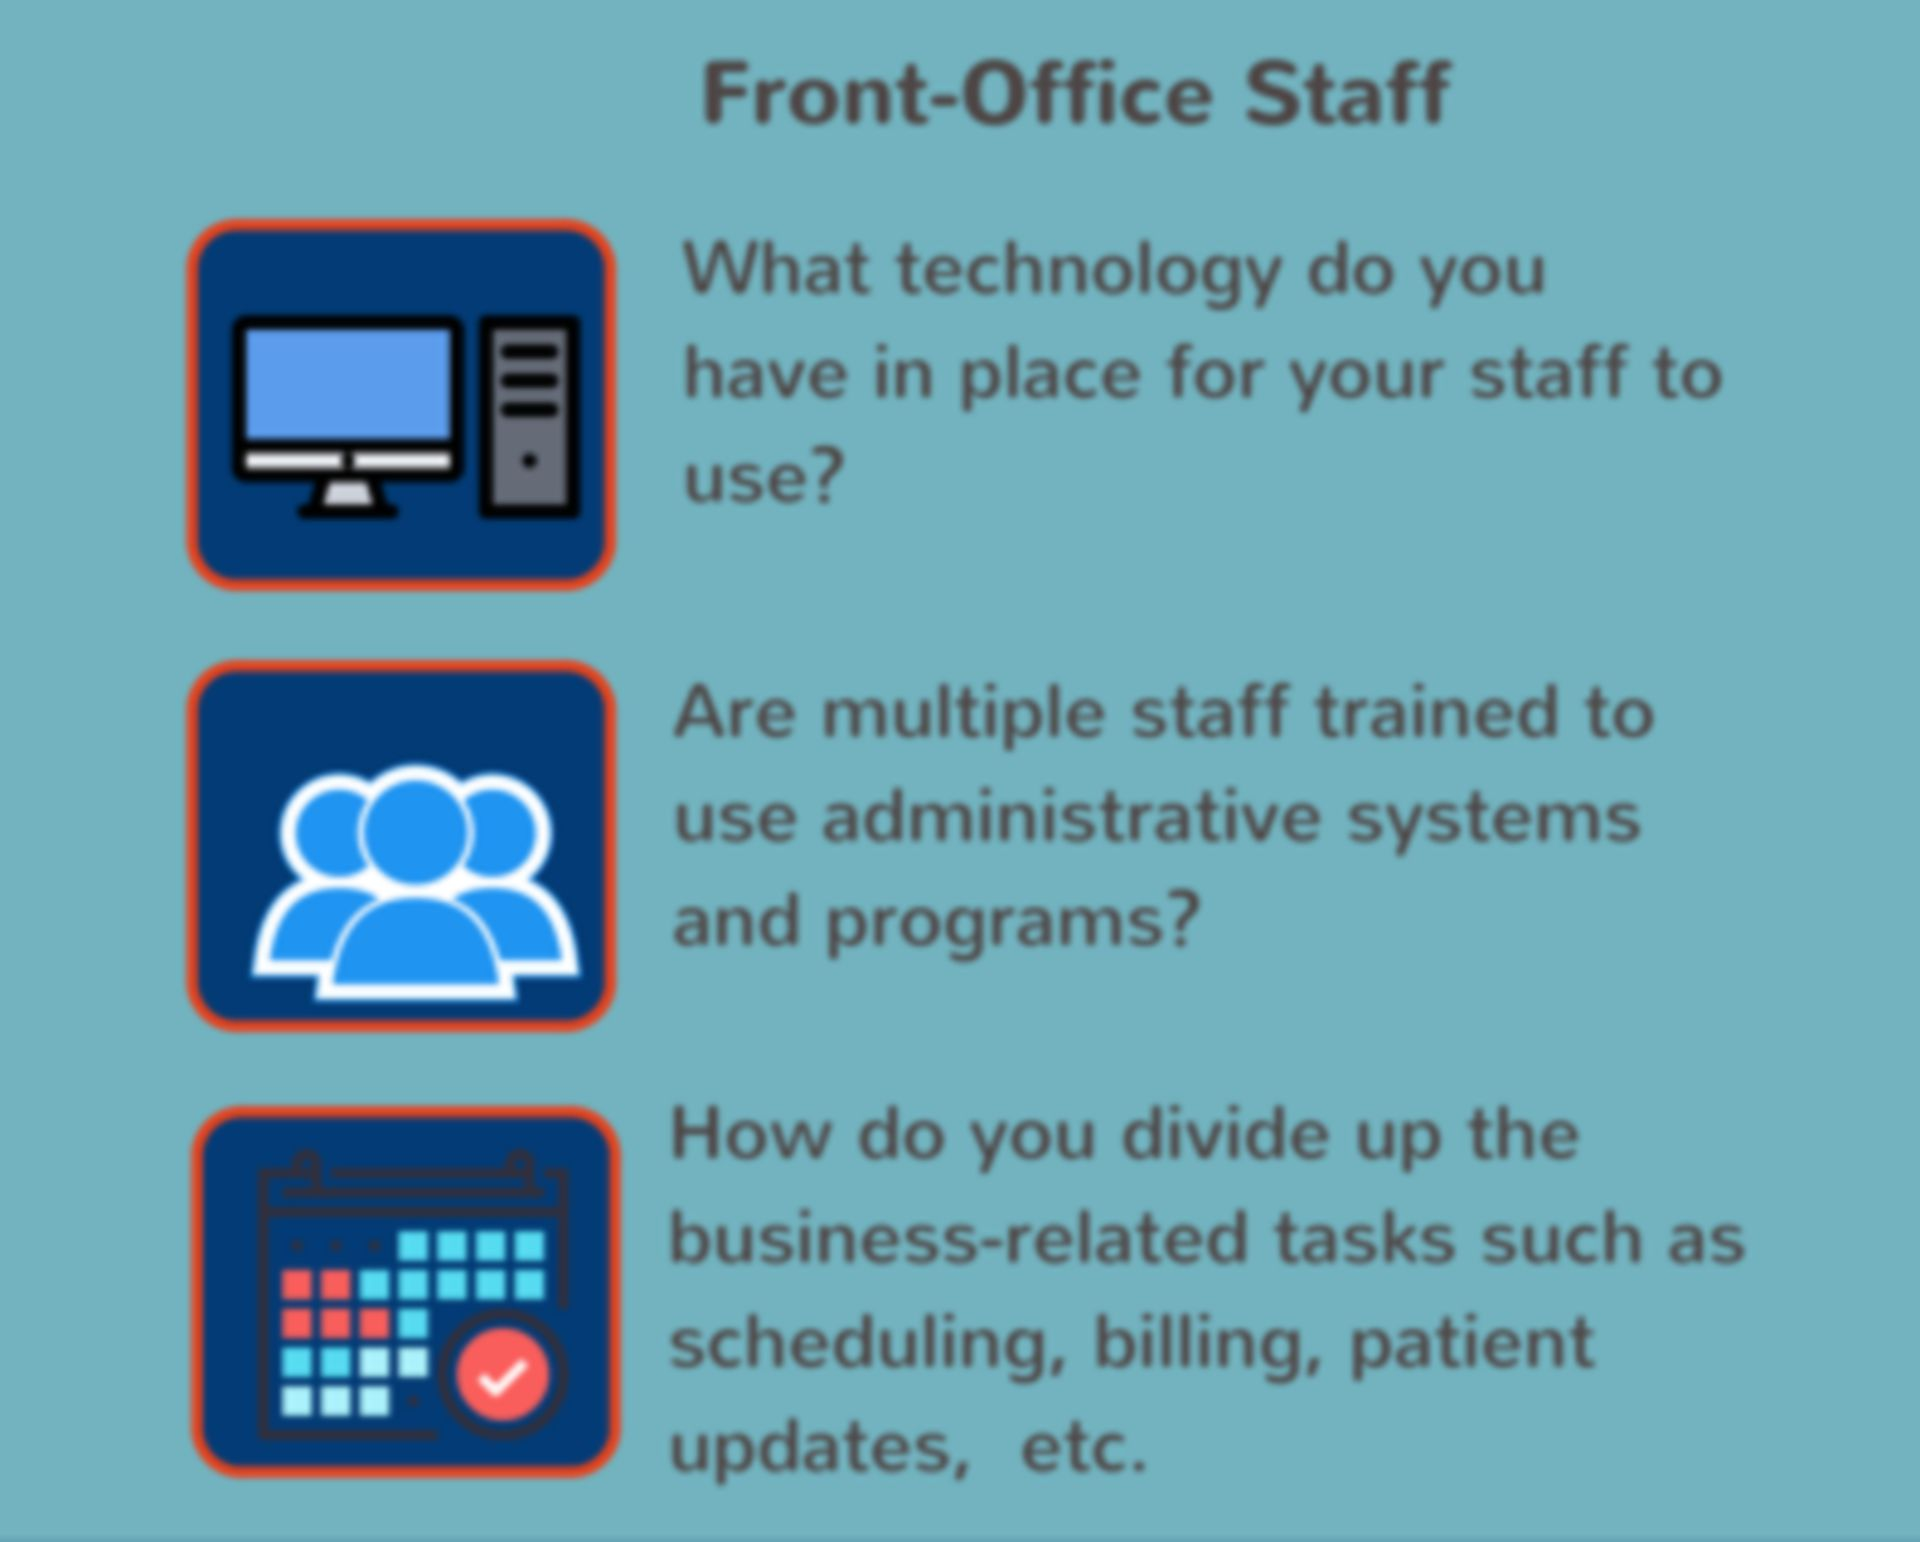 Front-Office Staff